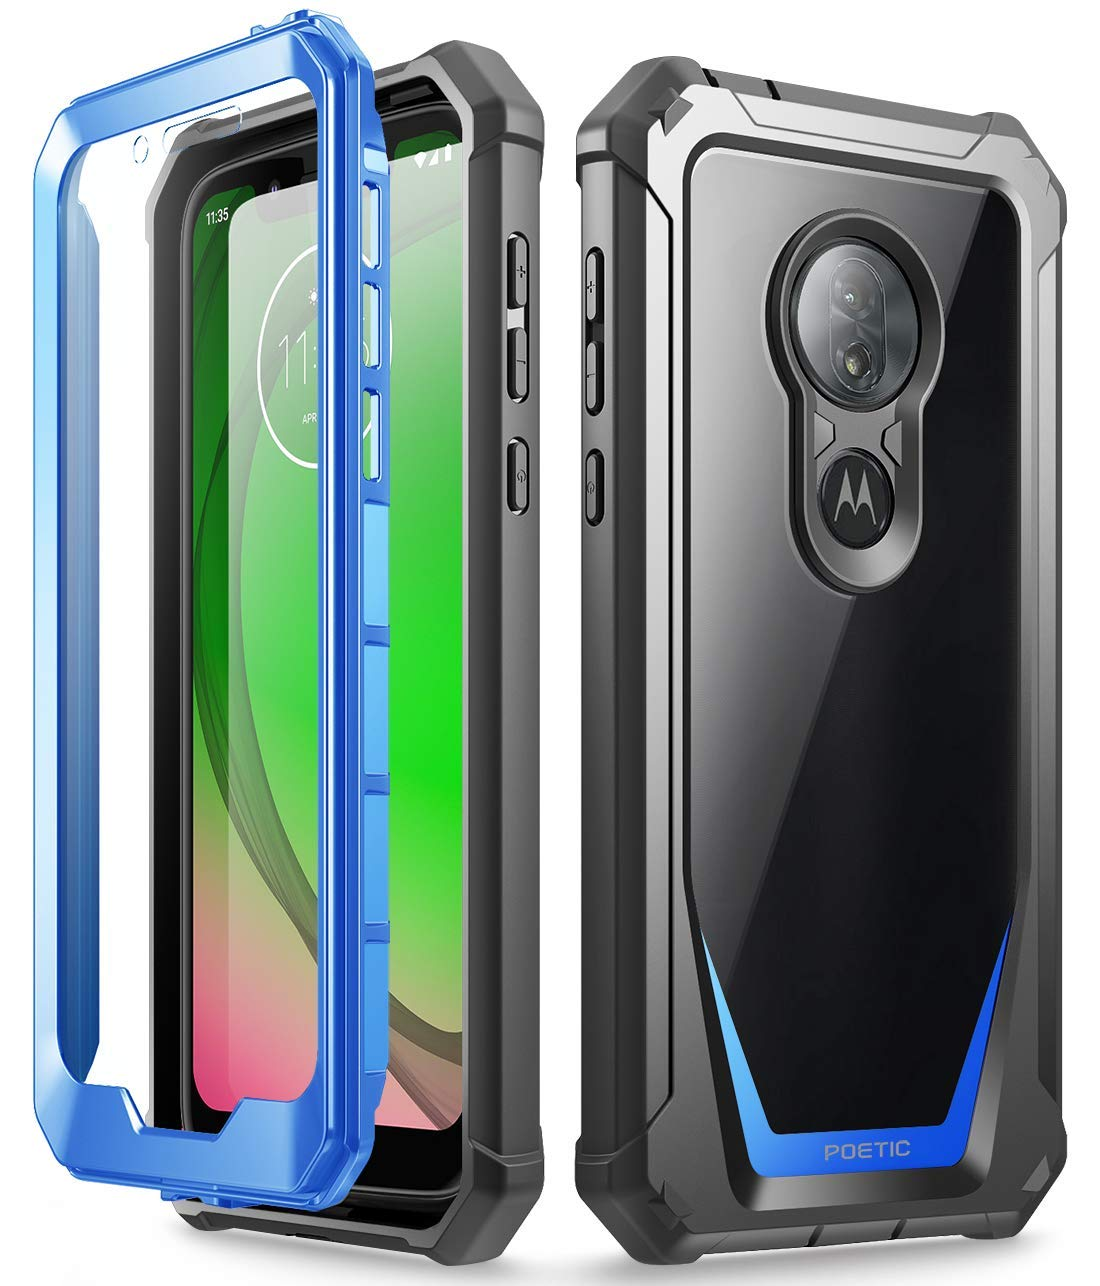 Funda Para Moto G7 Play Poetic (7p535746)